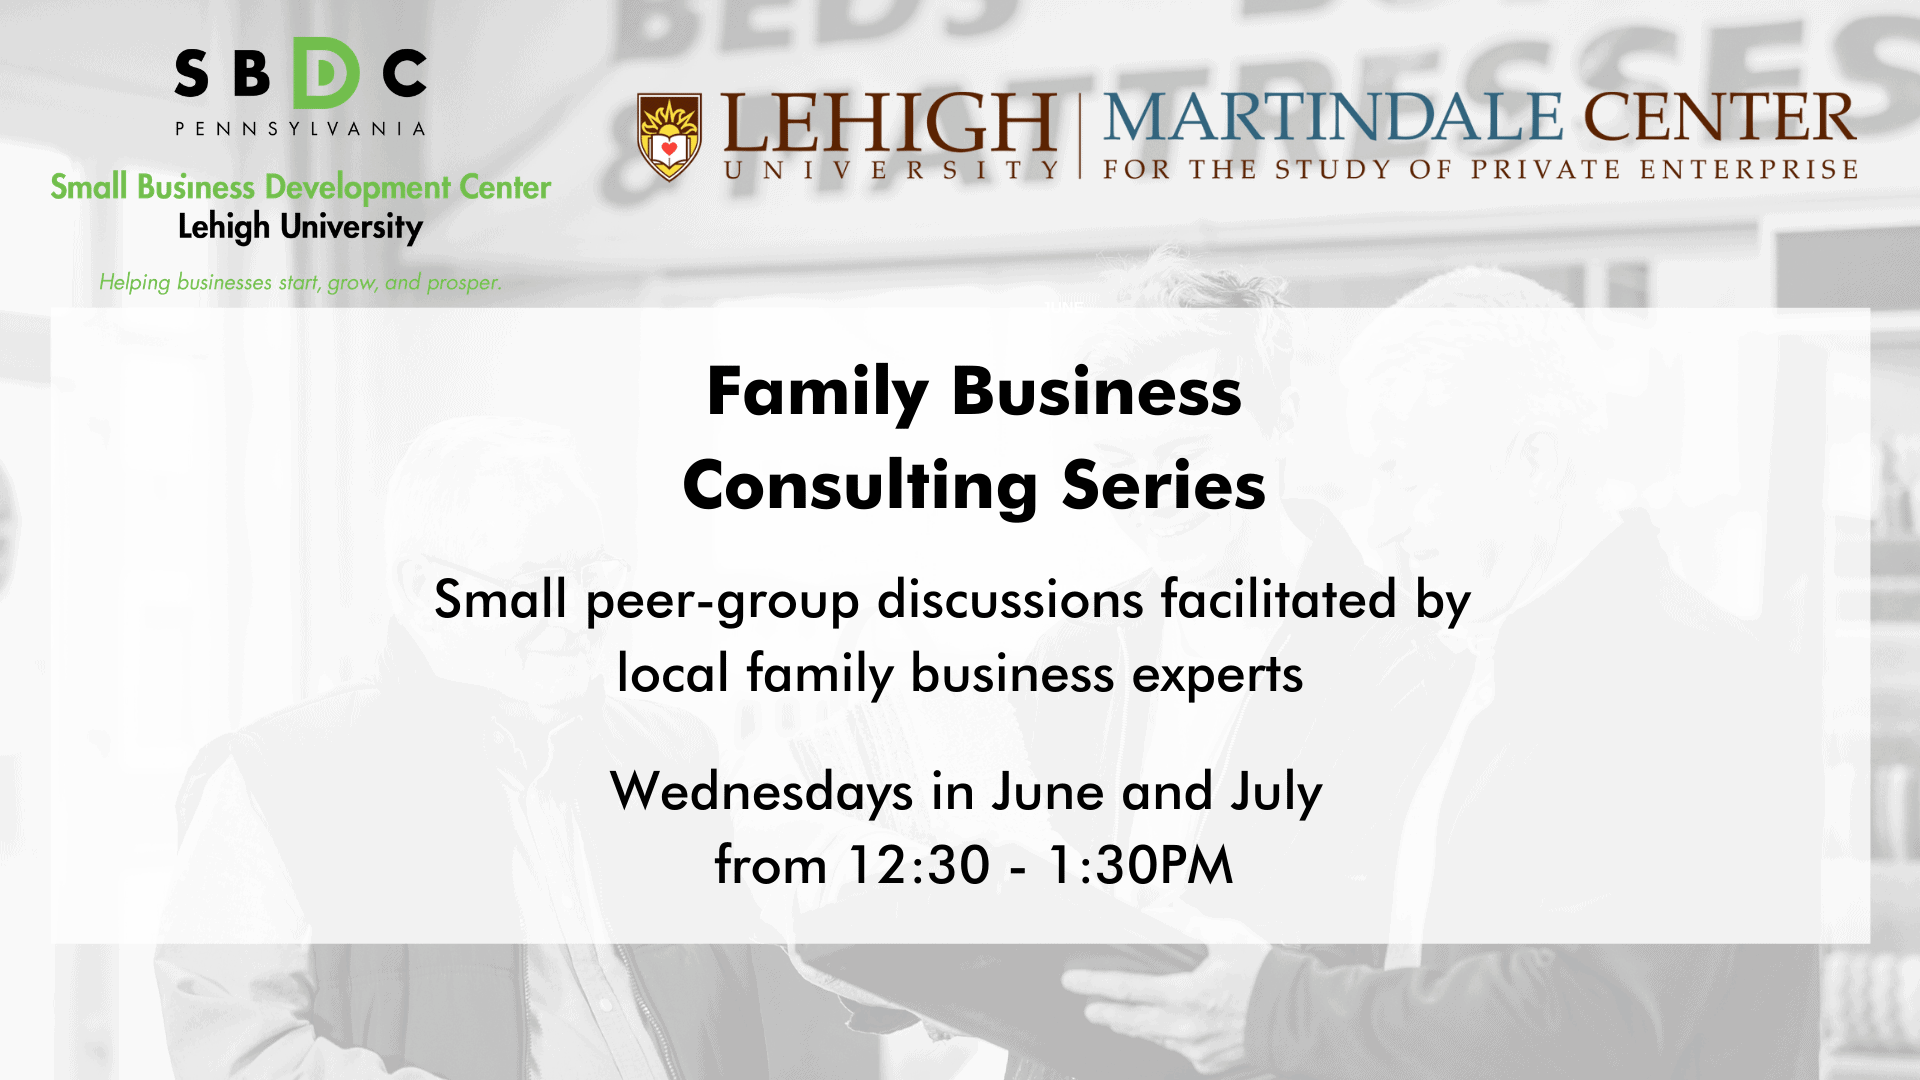 Family Business Consulting Series